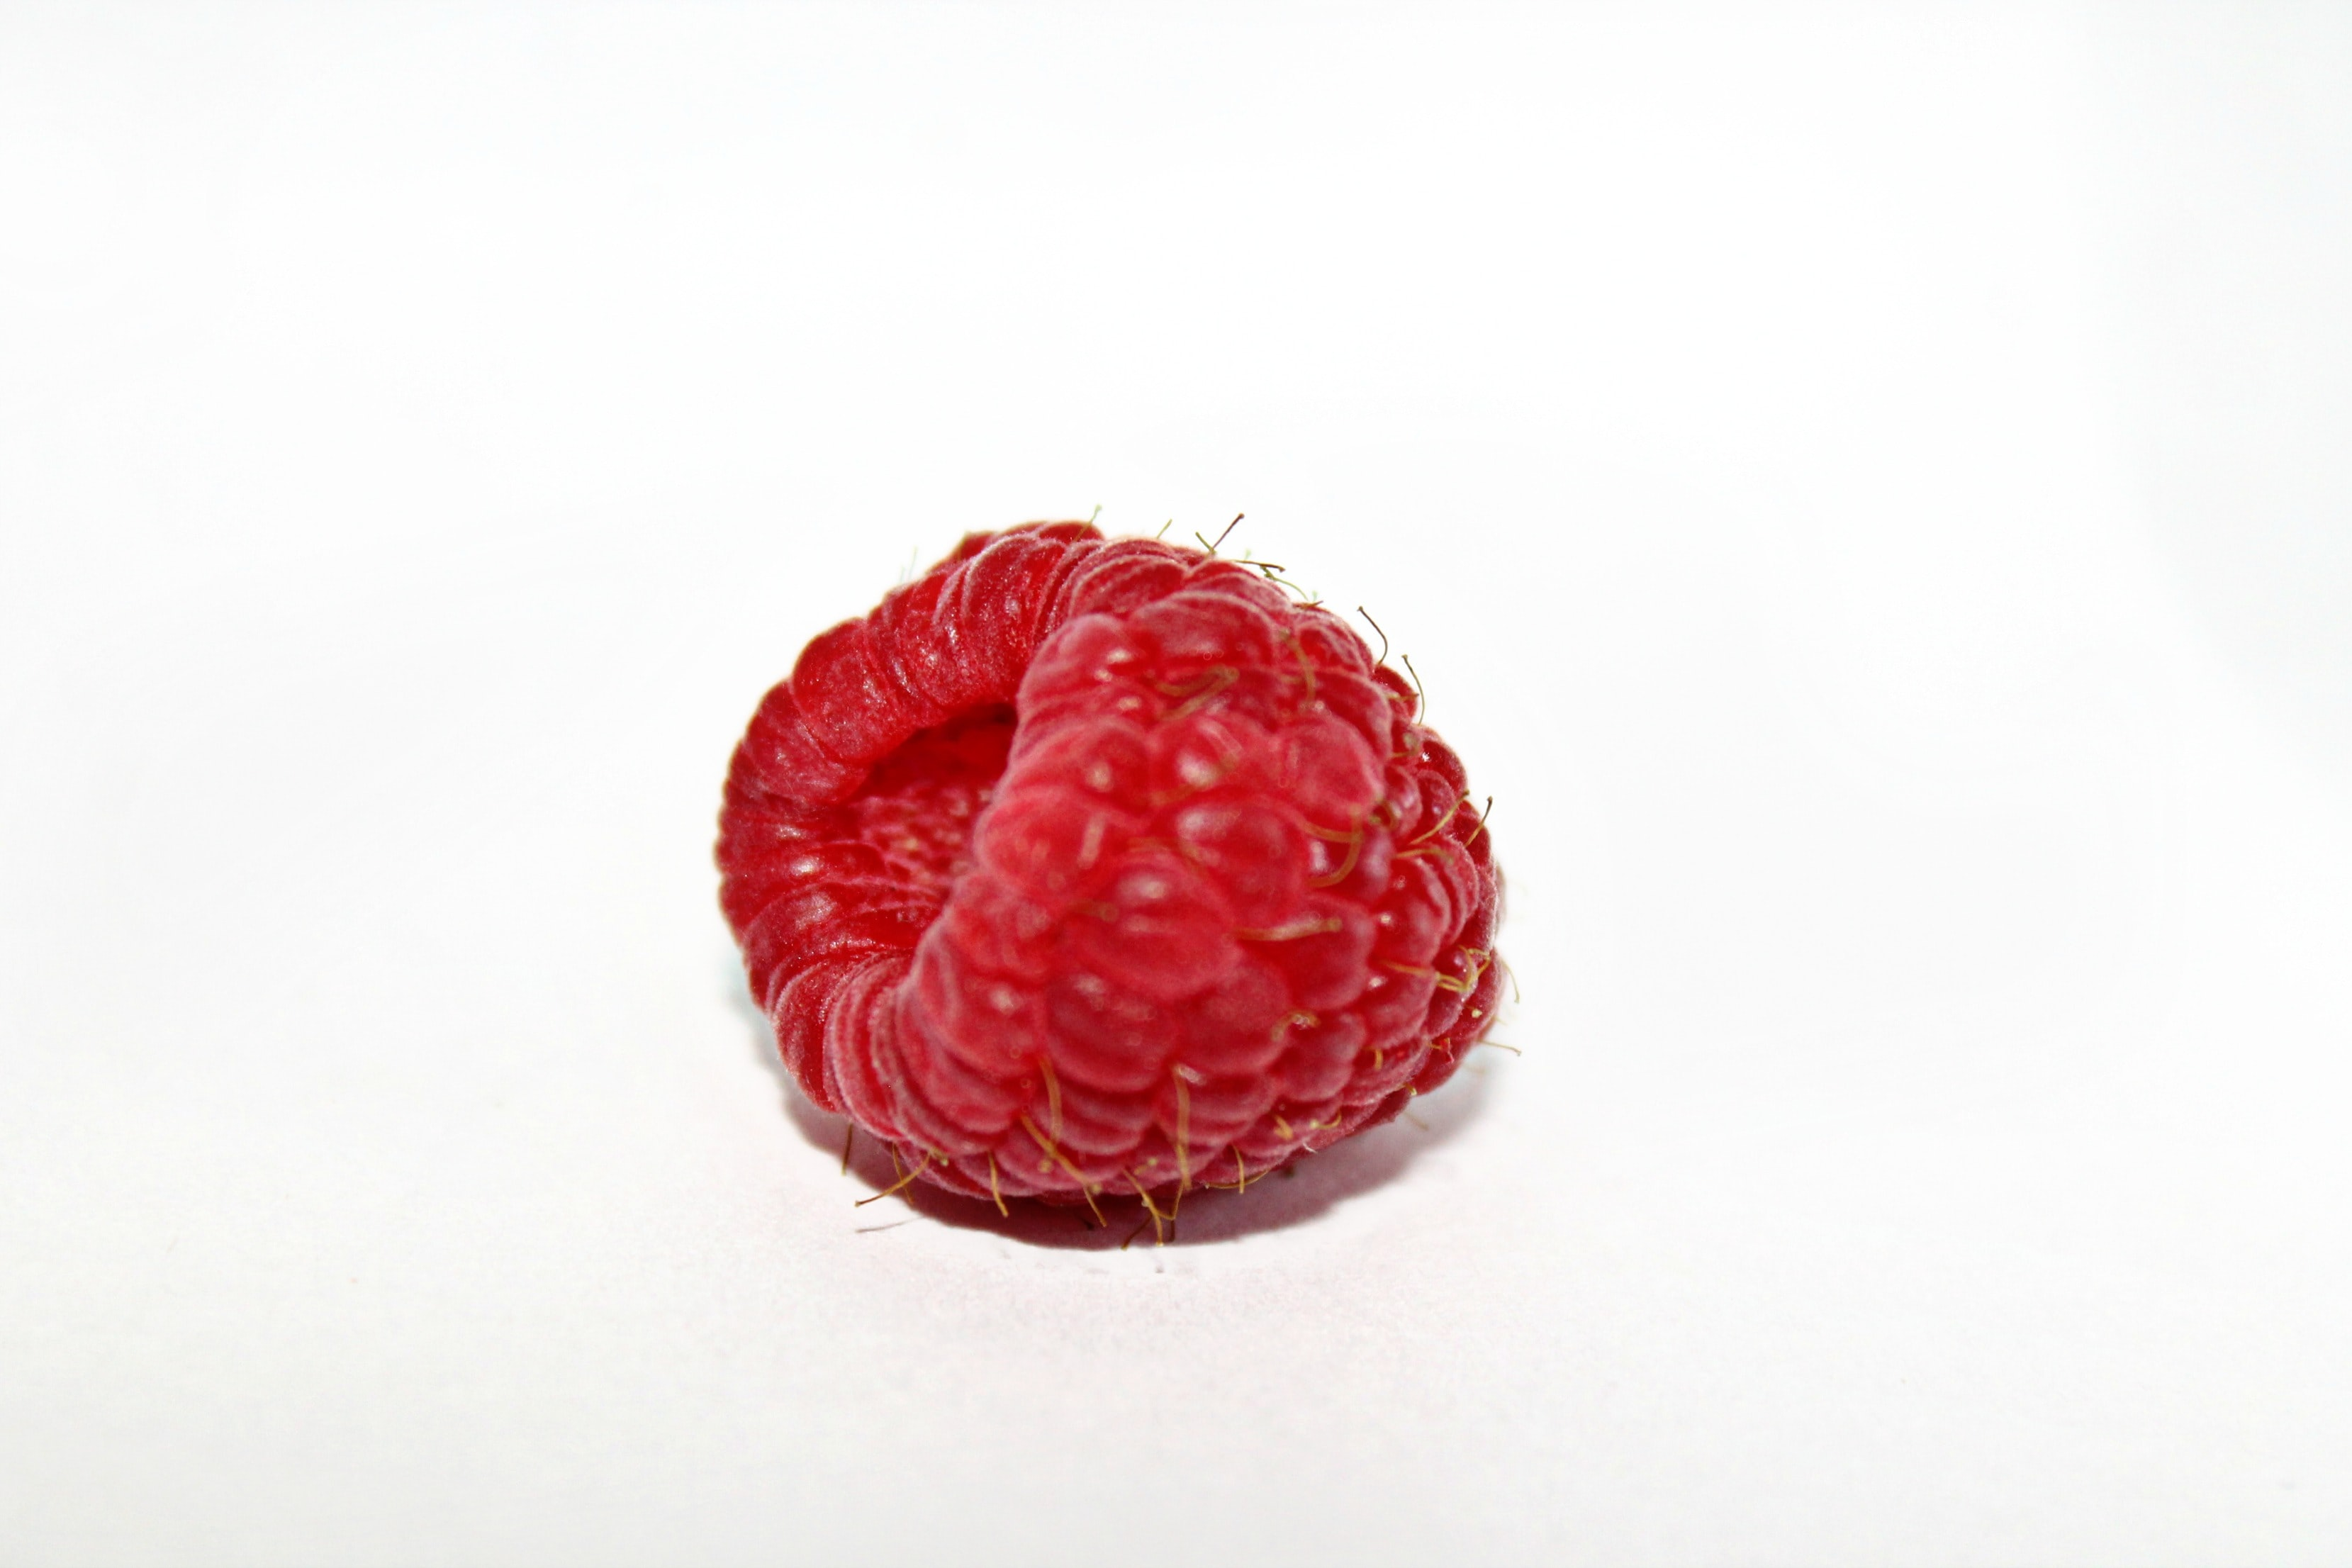 red rasp berry